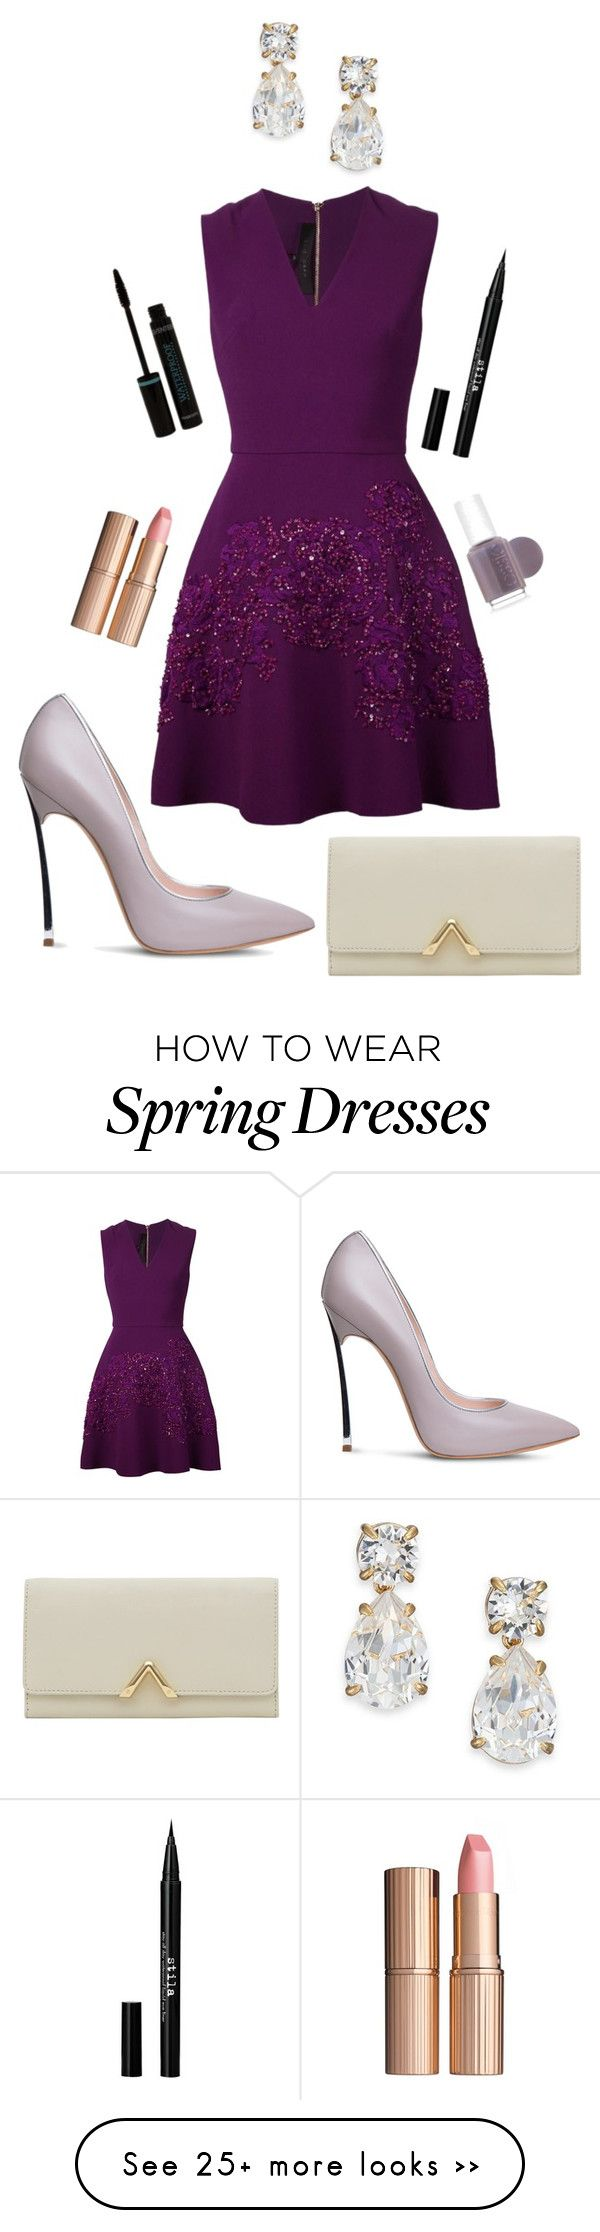 """Untitled #151"" by lo2lo2a on Polyvore featuring Elie Saab, Casadei, Reiss, Kate Spade, Charlotte Tilbury, Stila and Essie"